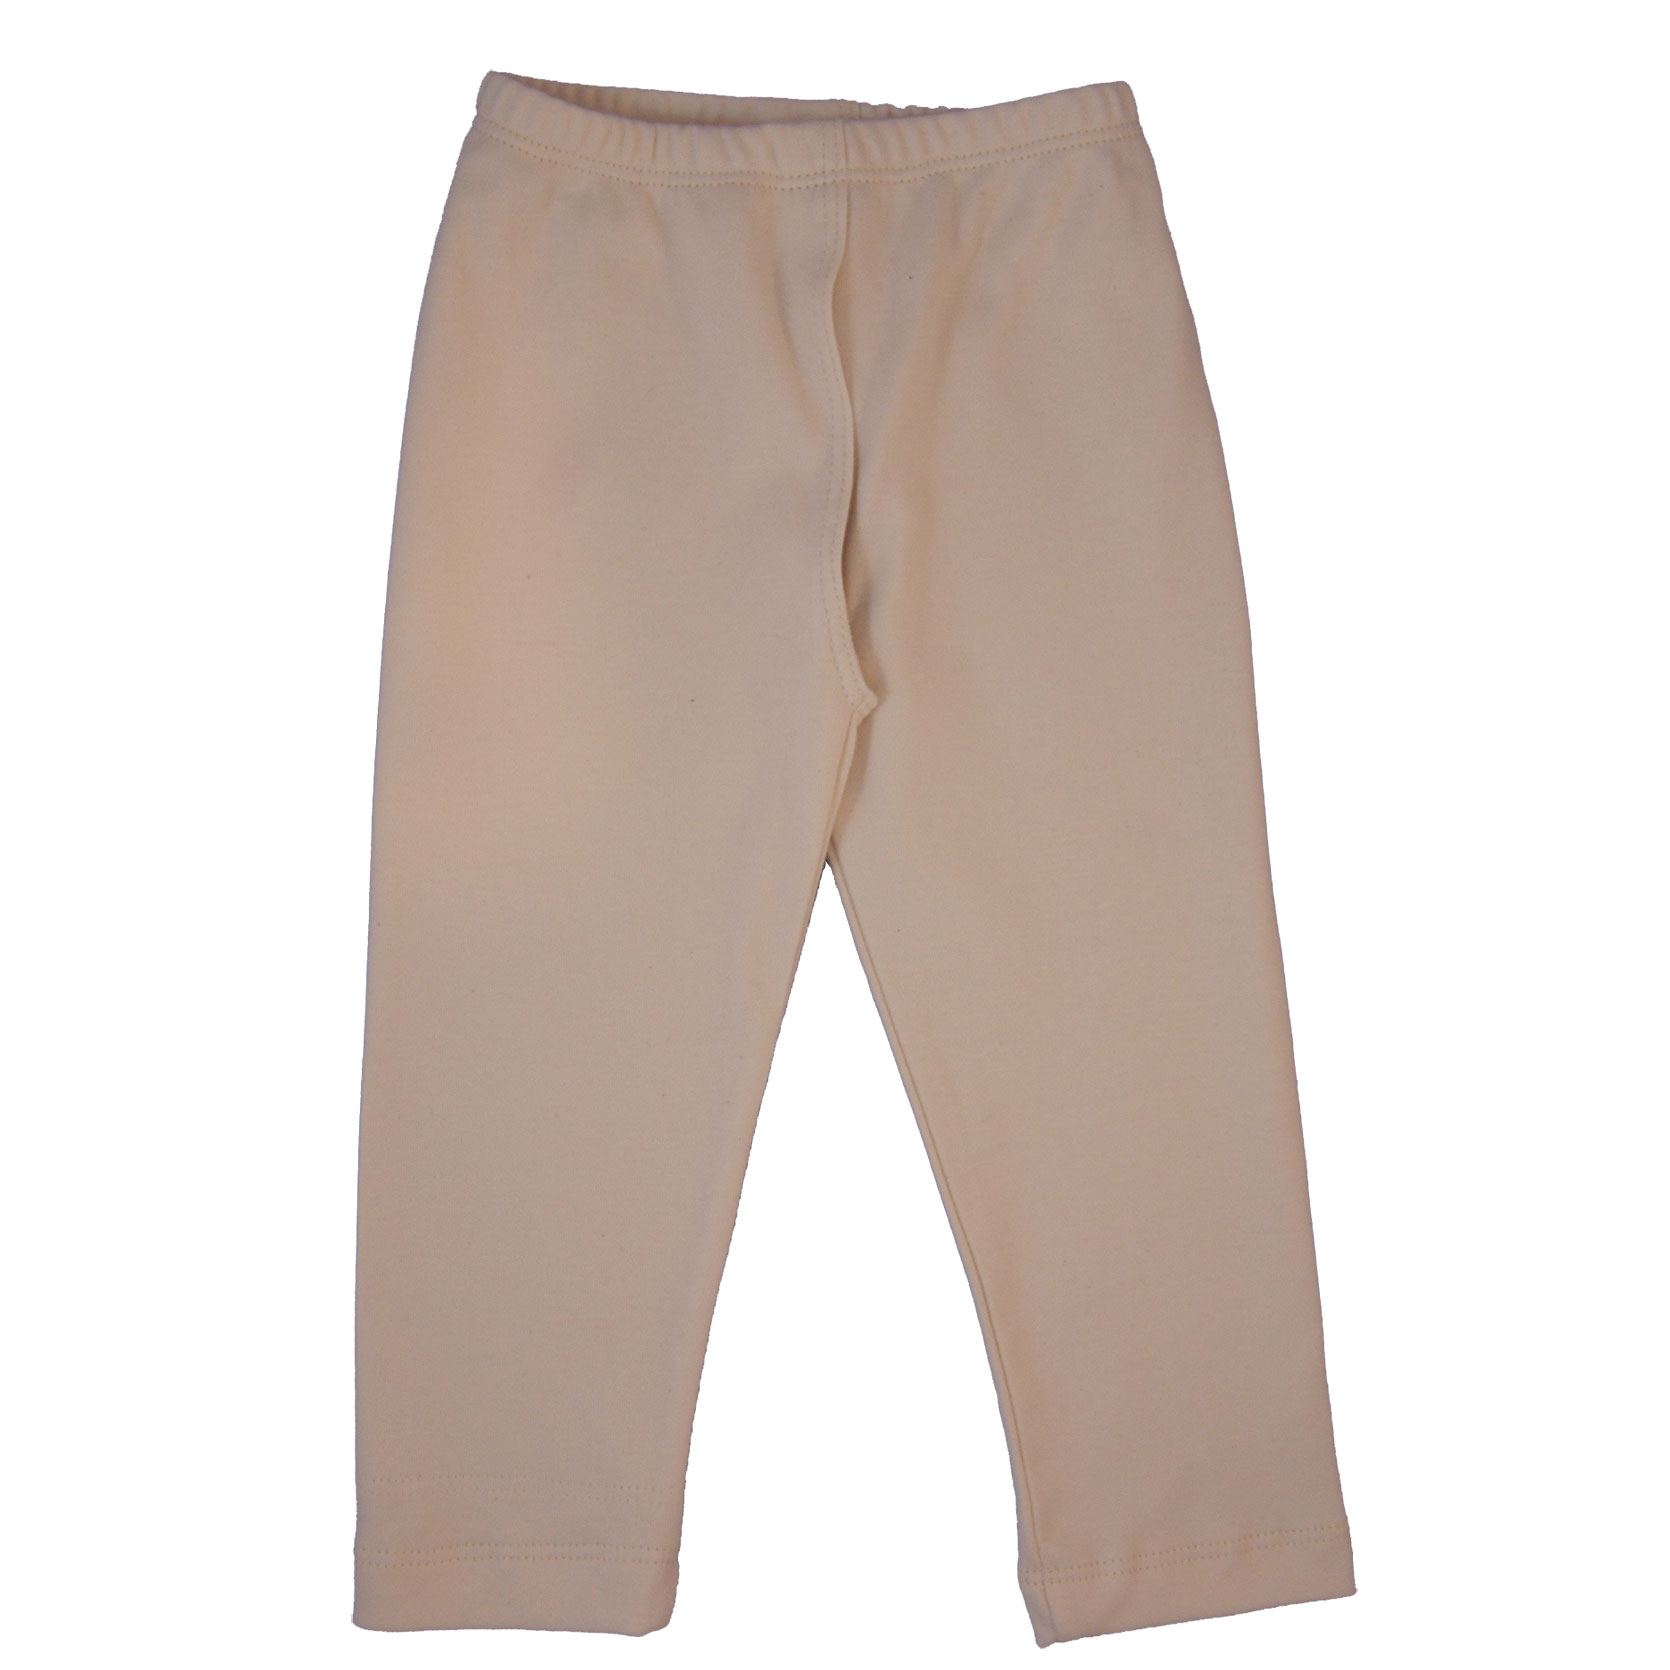 EC Wear Split Pants Natural Cotton on Model